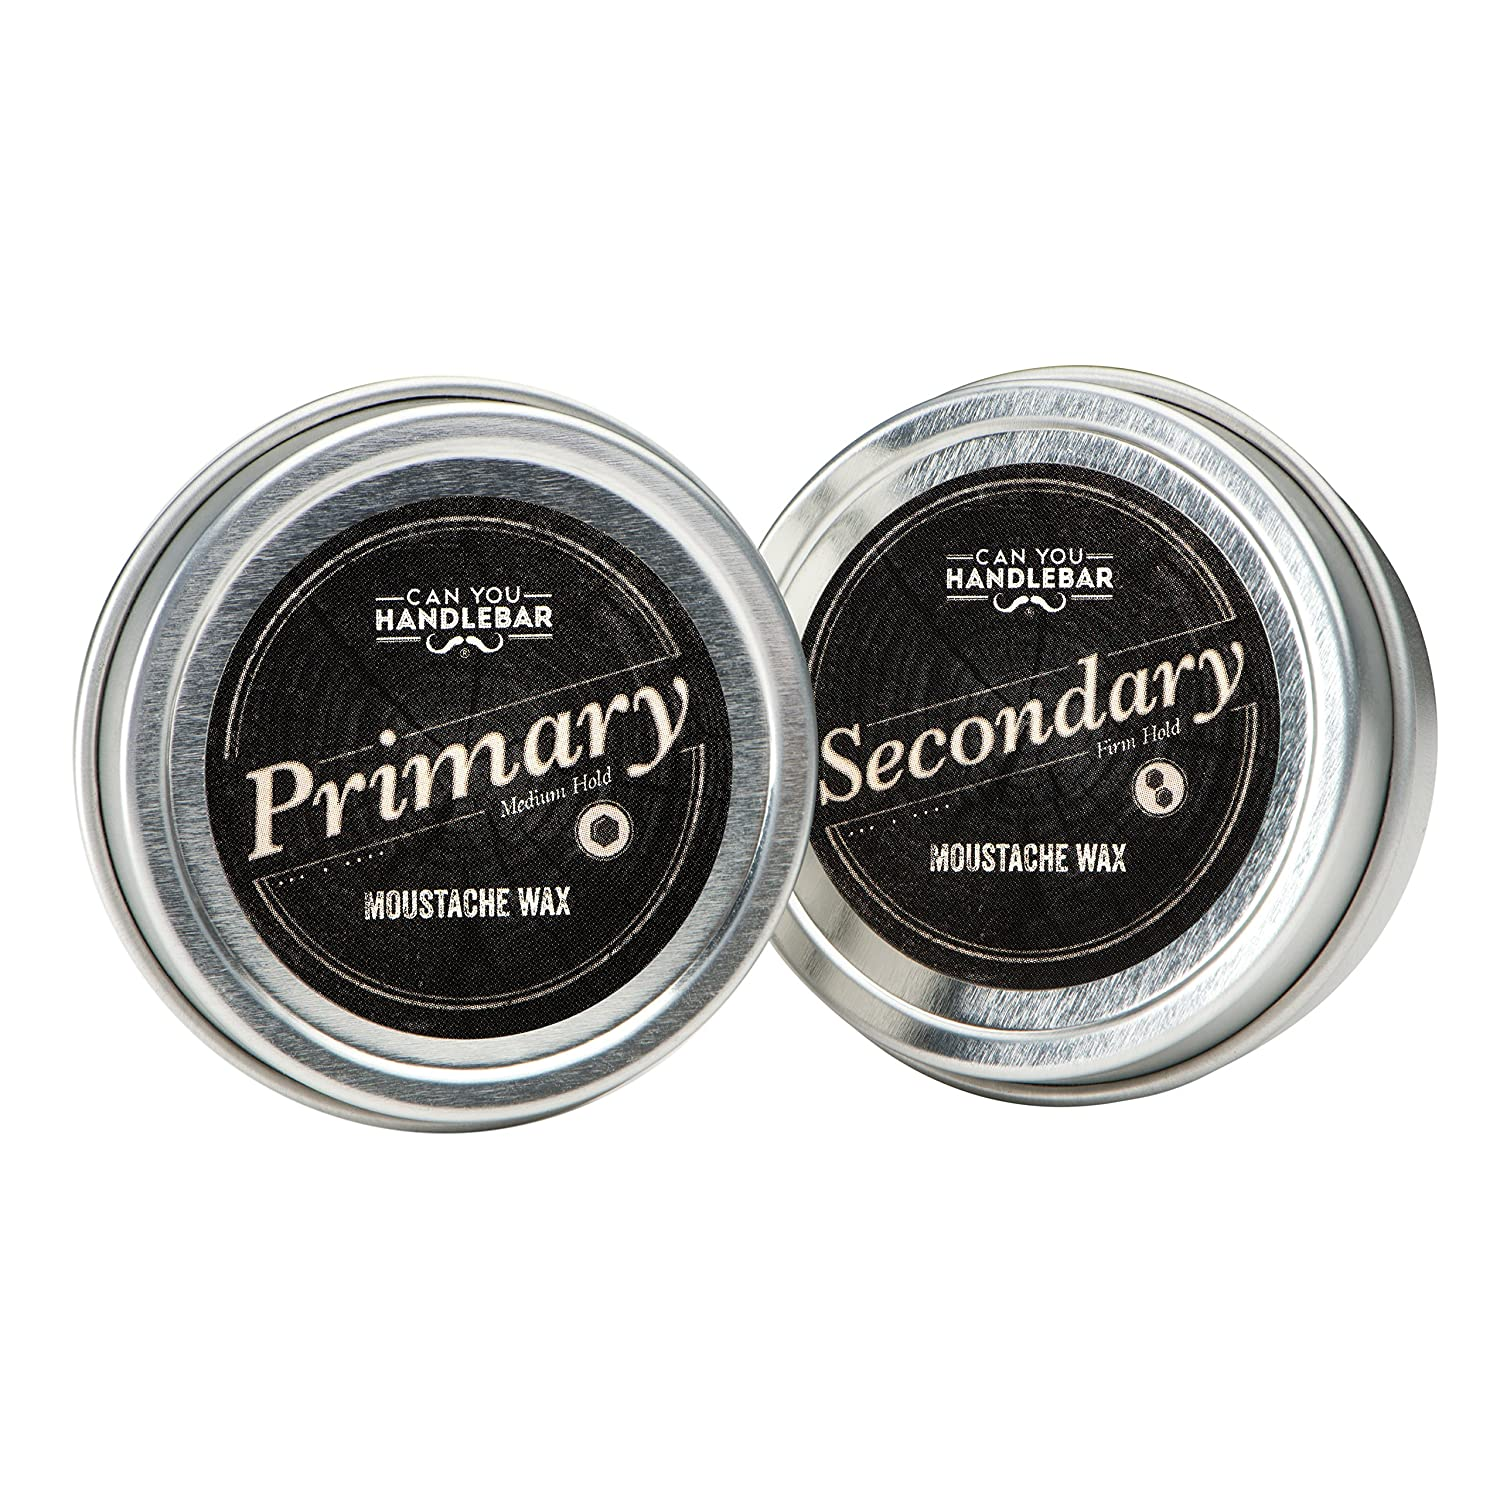 Primary and Secondary Moustache Wax SET | Natural, All Day Hold + Extra Strength | 1 OZ Cans CanYouHandlebar